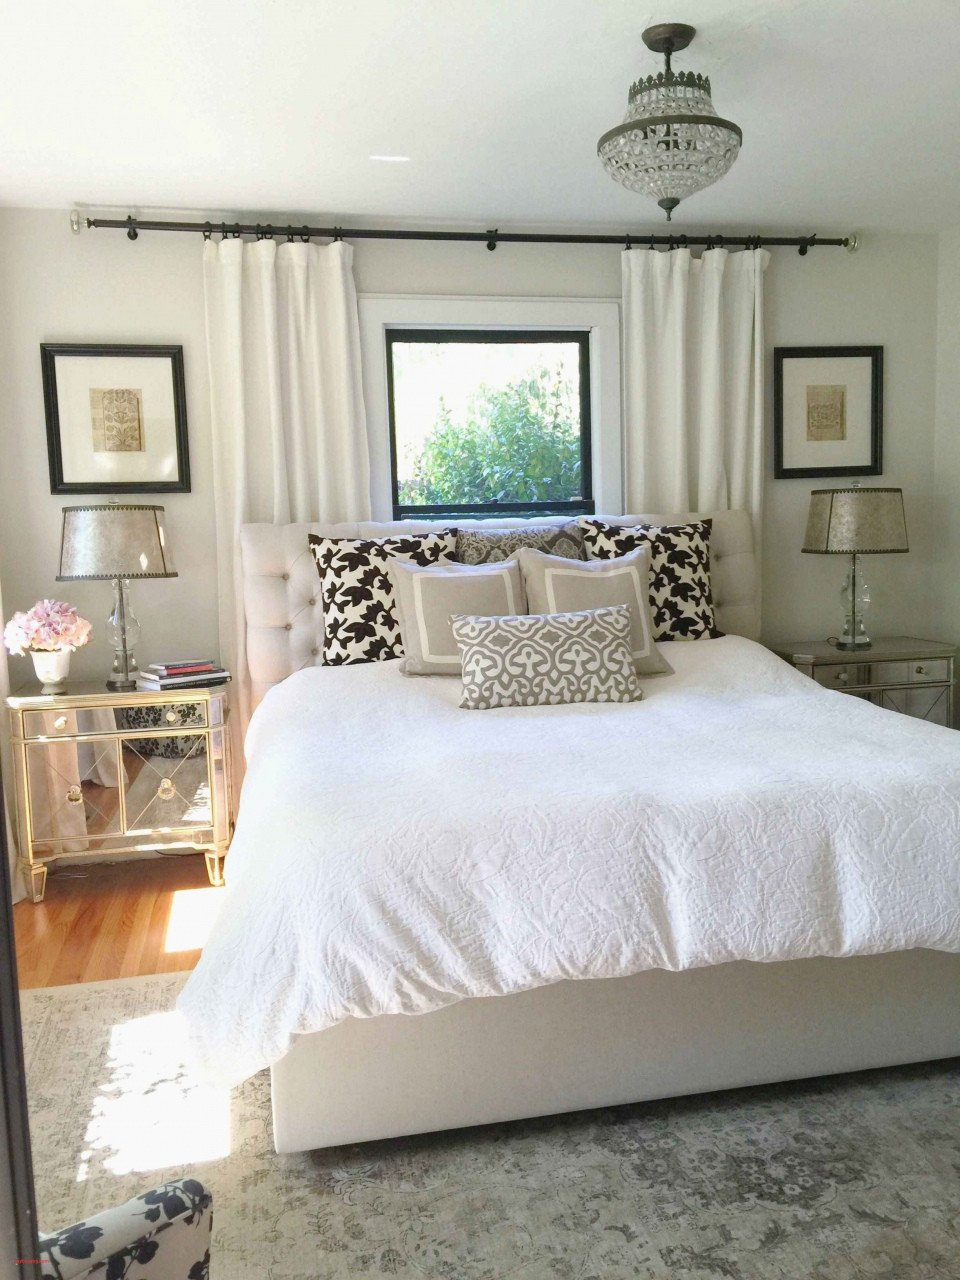 Ashley Girl Bedroom Set Inspirational Bedroom Sets Queen — Procura Home Blog